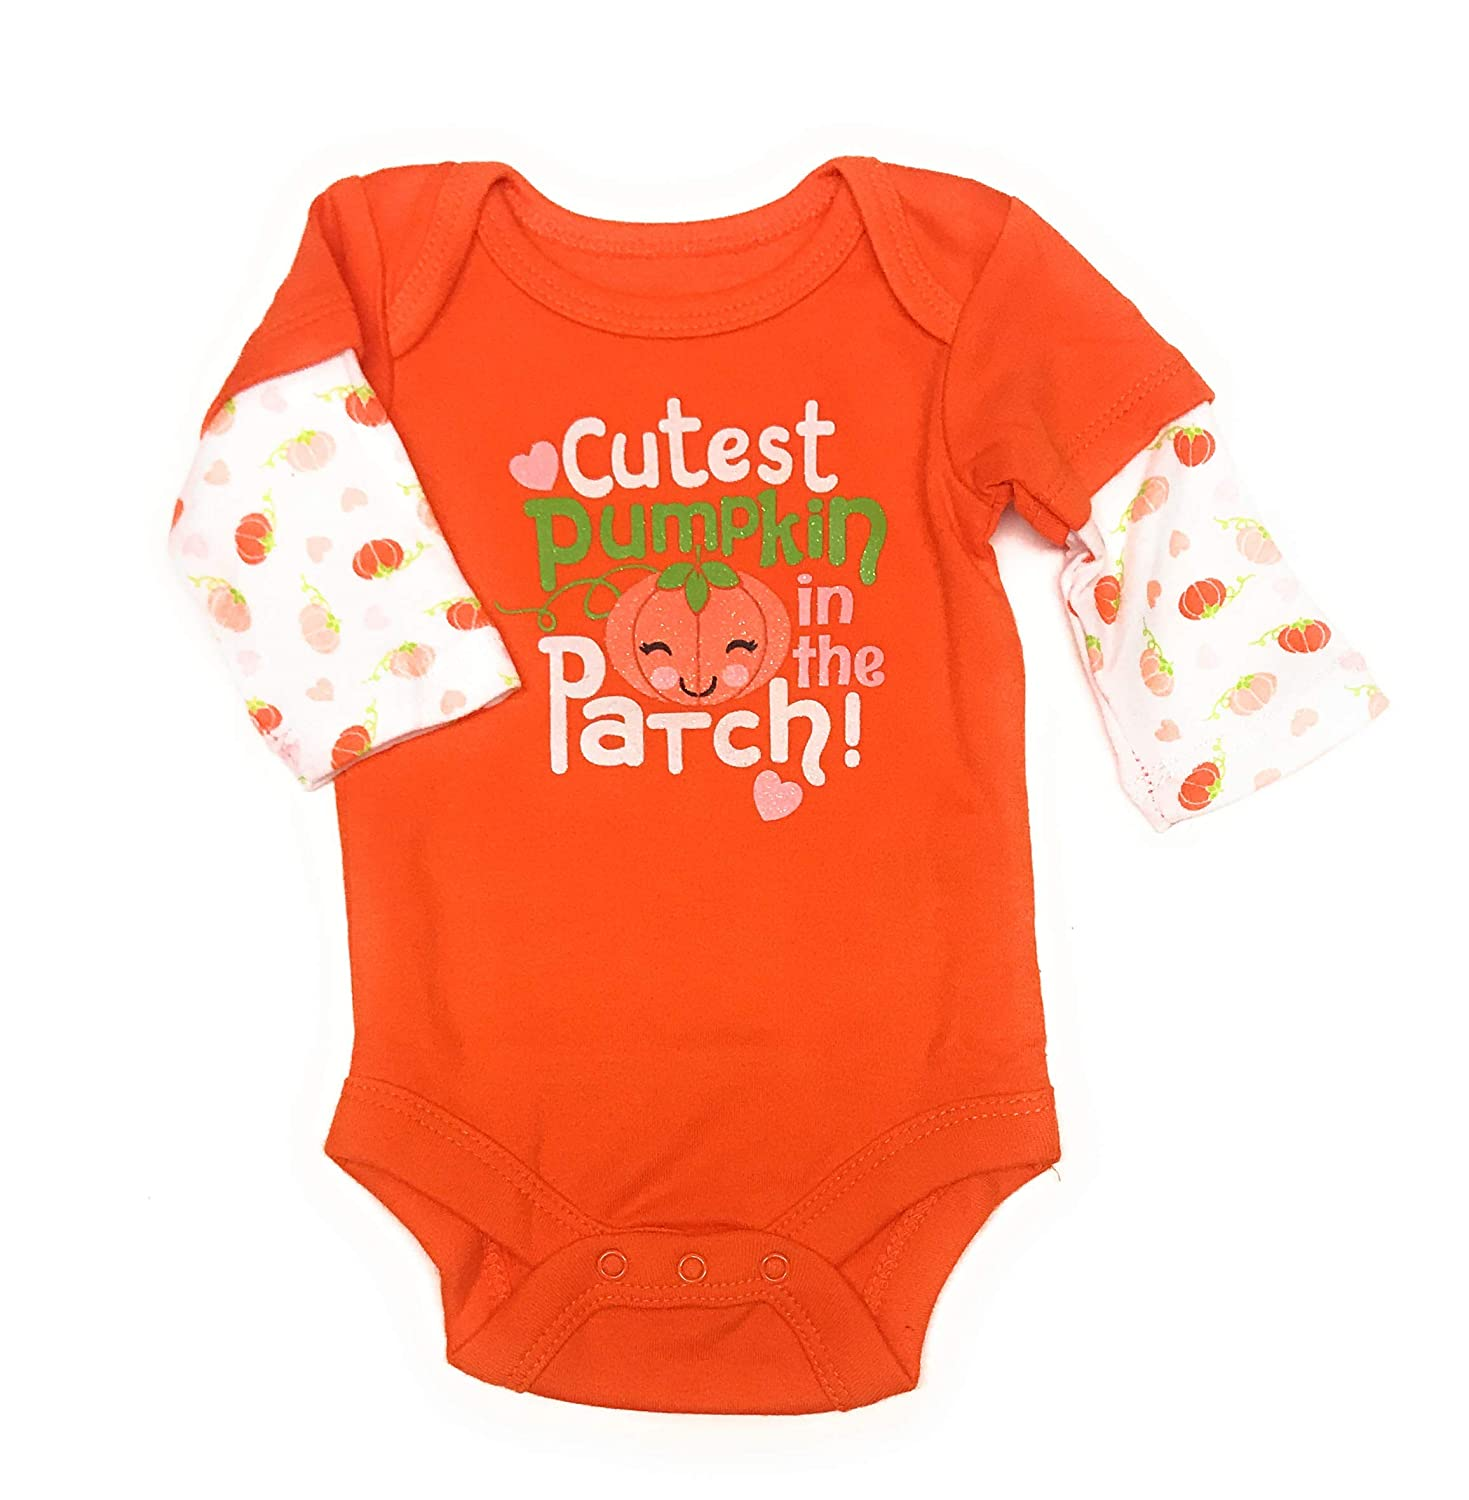 Careful 0-3 Month Patterned Floral Long Sleeve Bodysuits Clothing, Shoes & Accessories Baby & Toddler Clothing